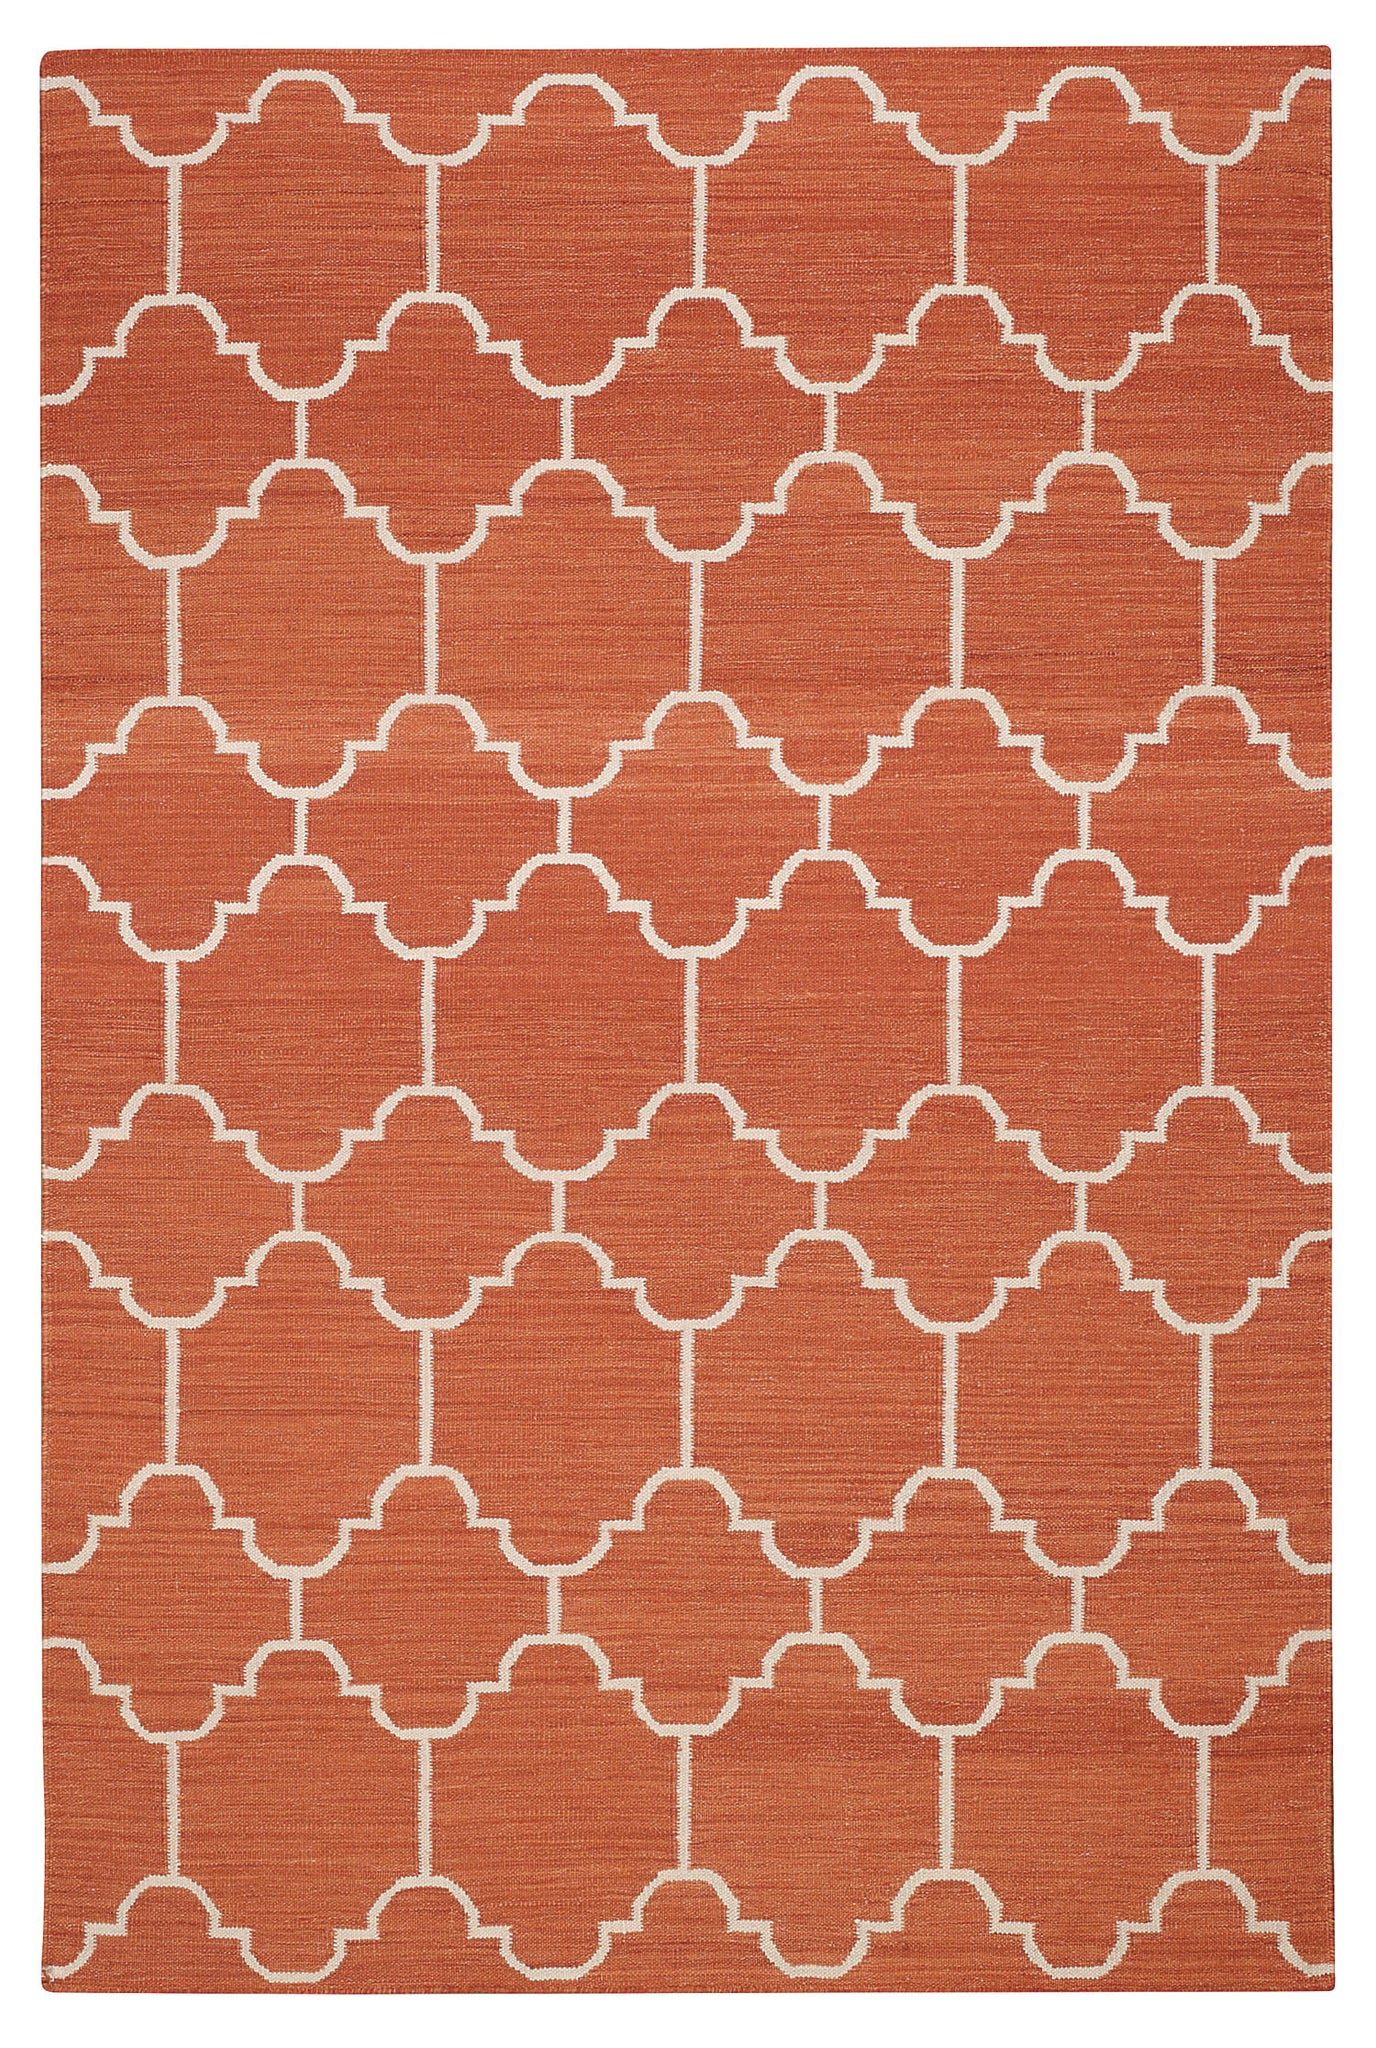 Capel Serpentine 3623 Sunny 800 Area Rug by Genevieve Gorder main image